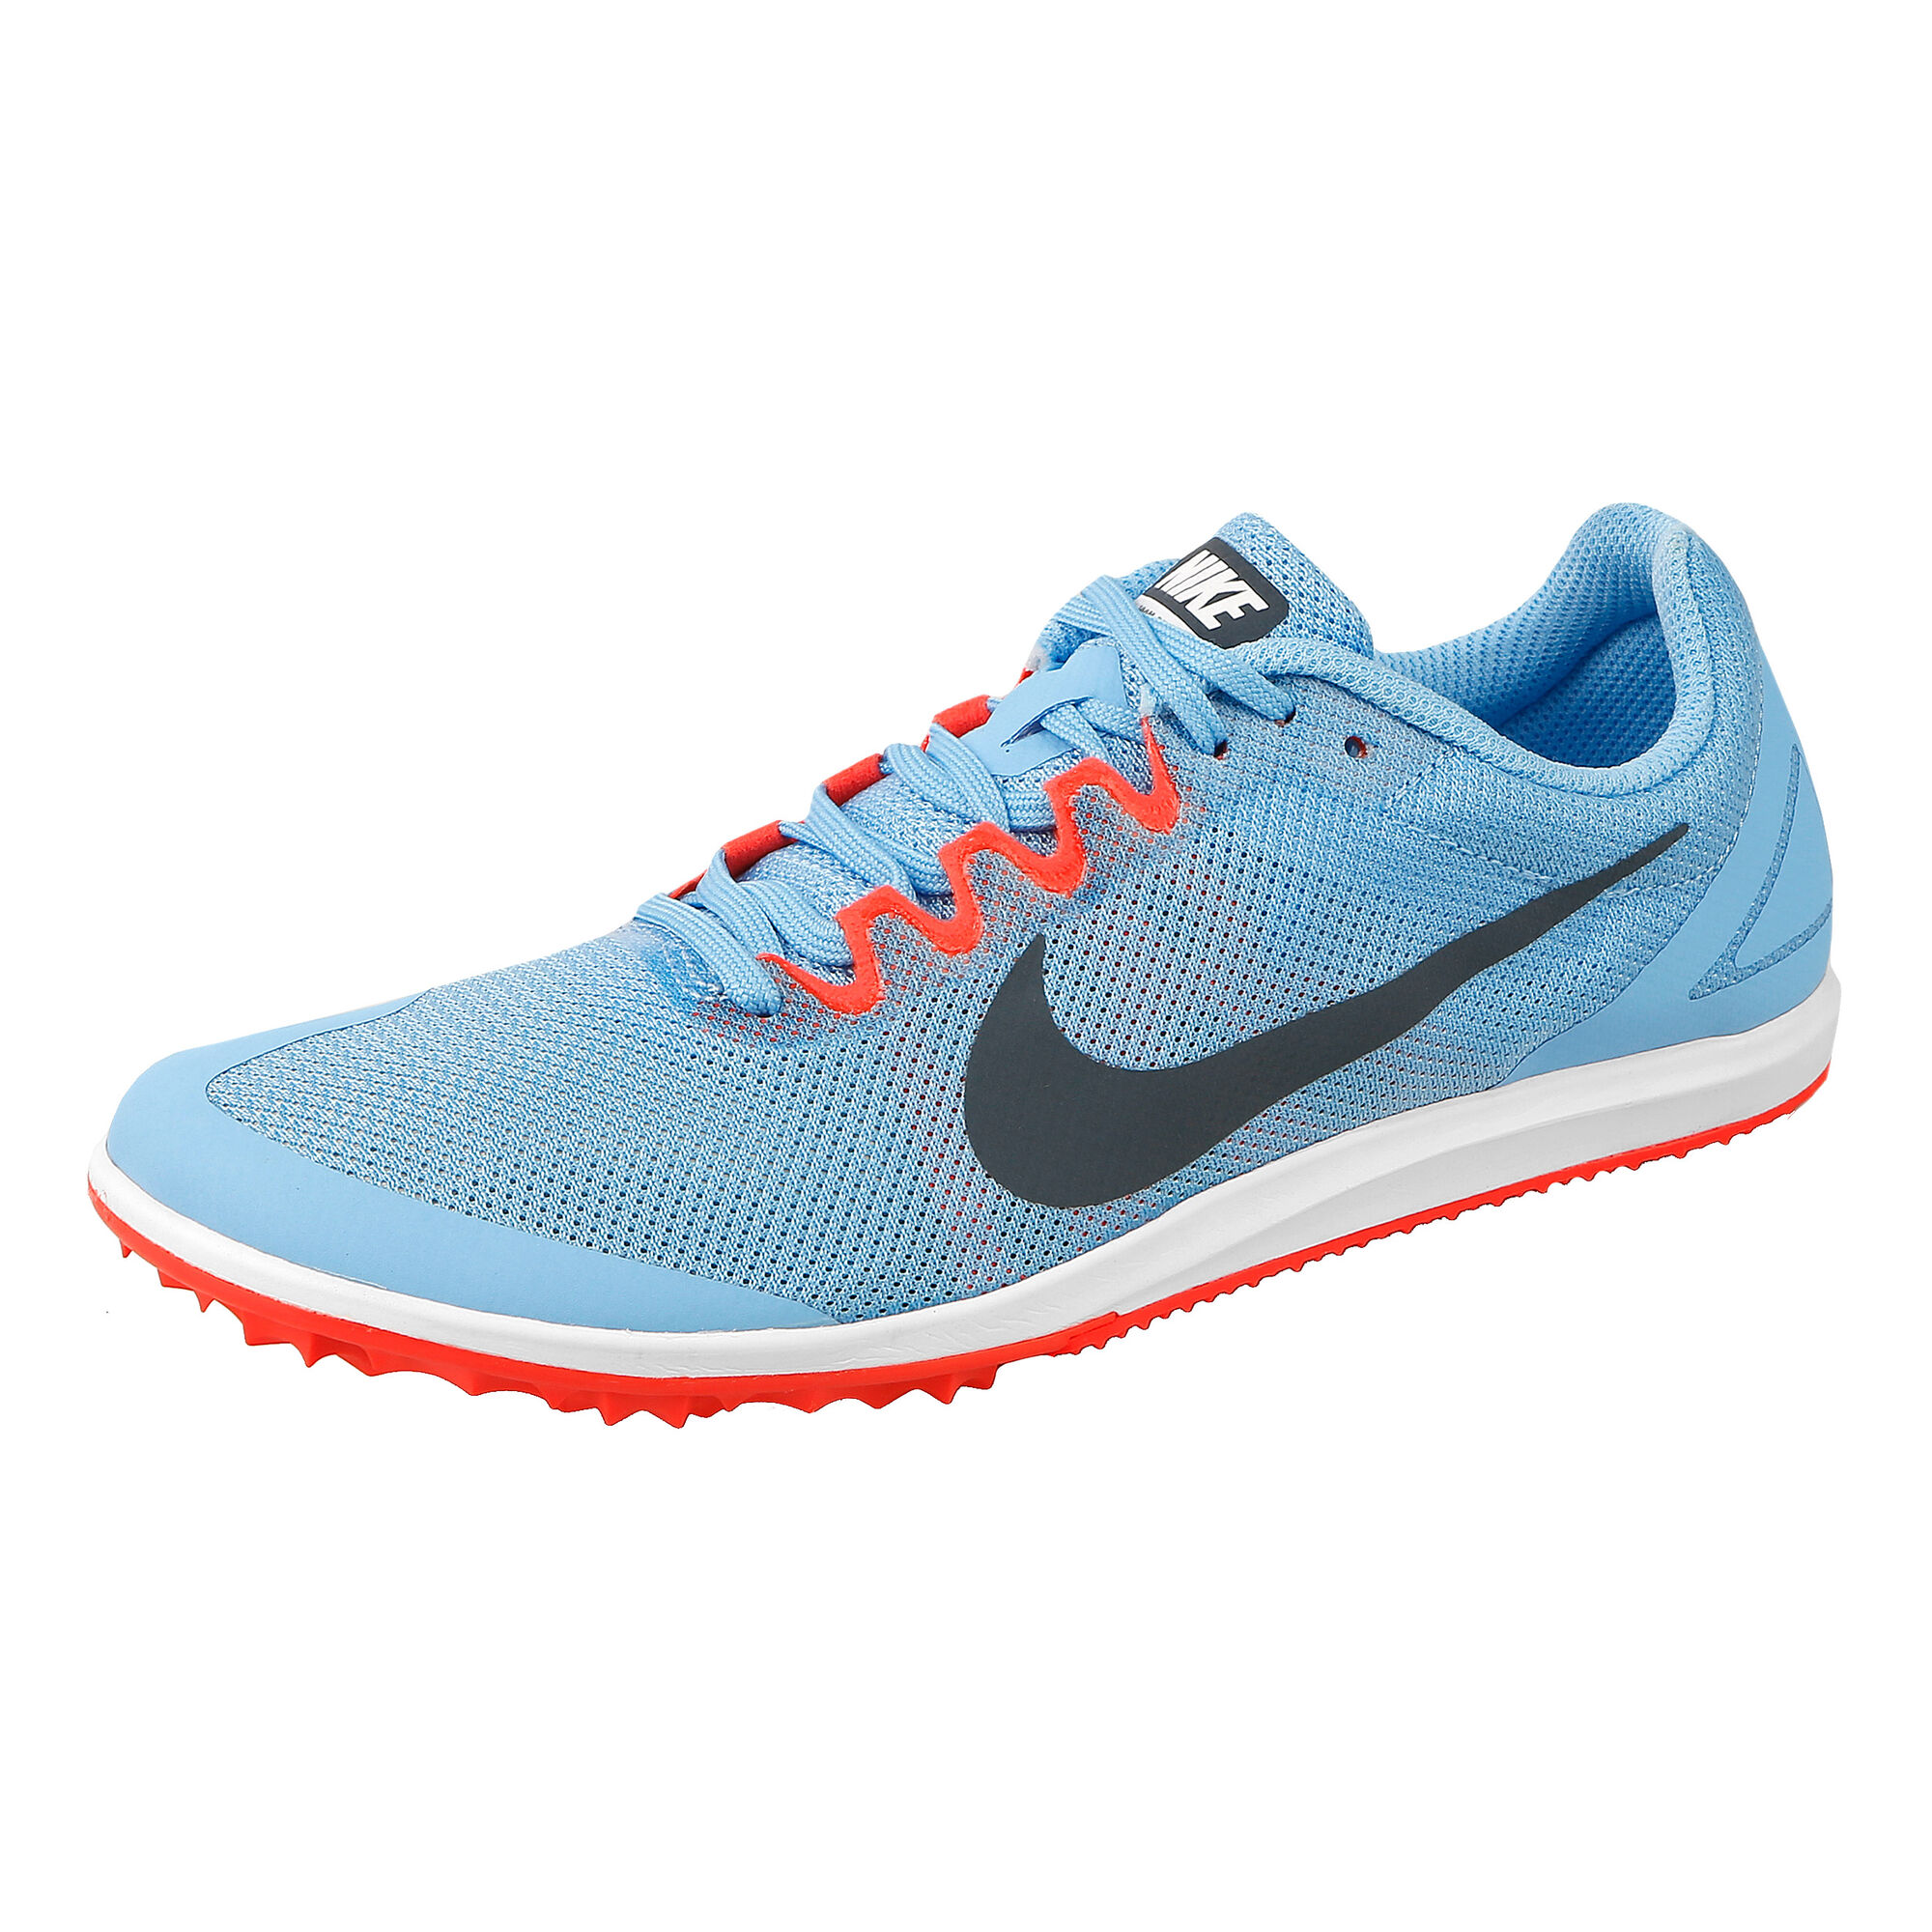 d12a744adf98 buy Nike Zoom Rival D 10 Spike Shoes - Light Blue